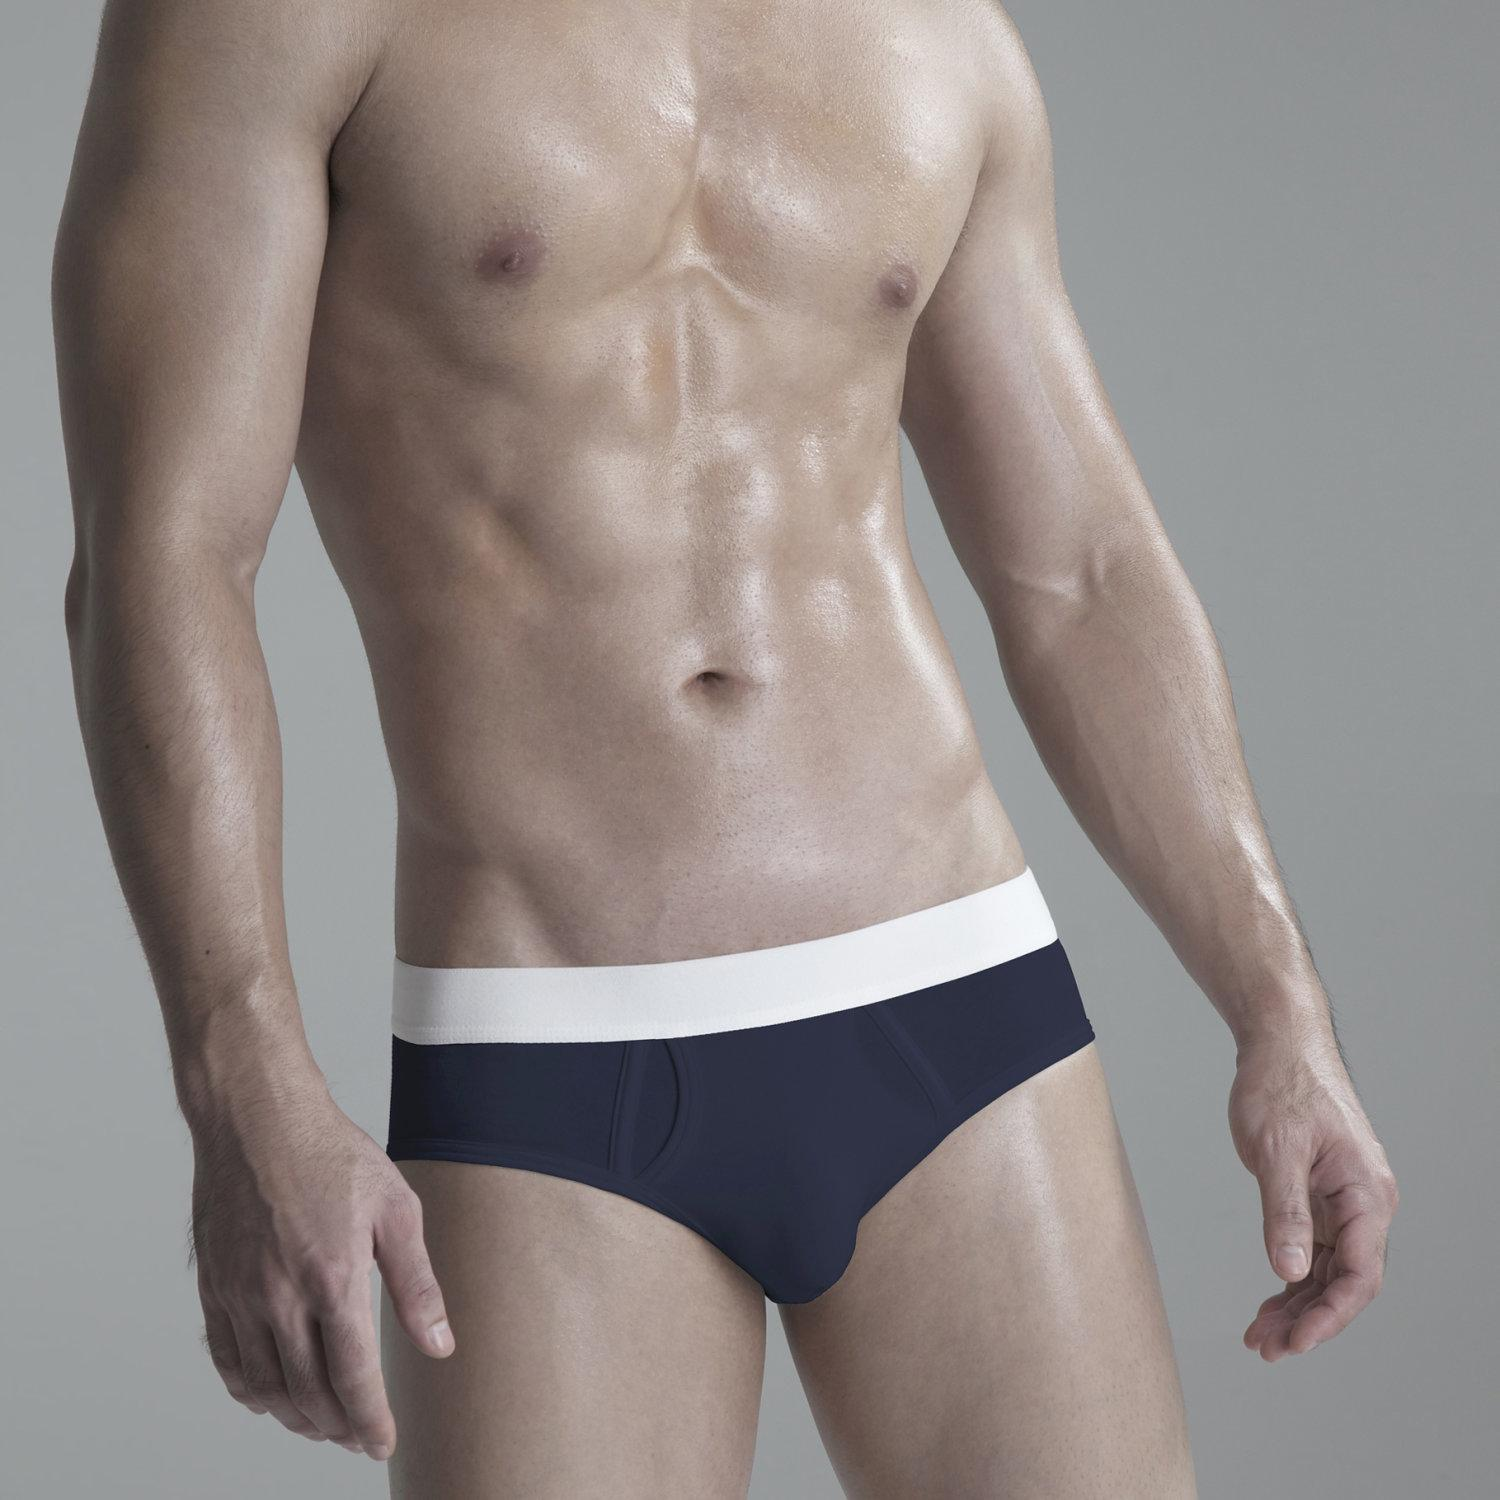 Briefs Underwear: Navy Blue / White Waist Band